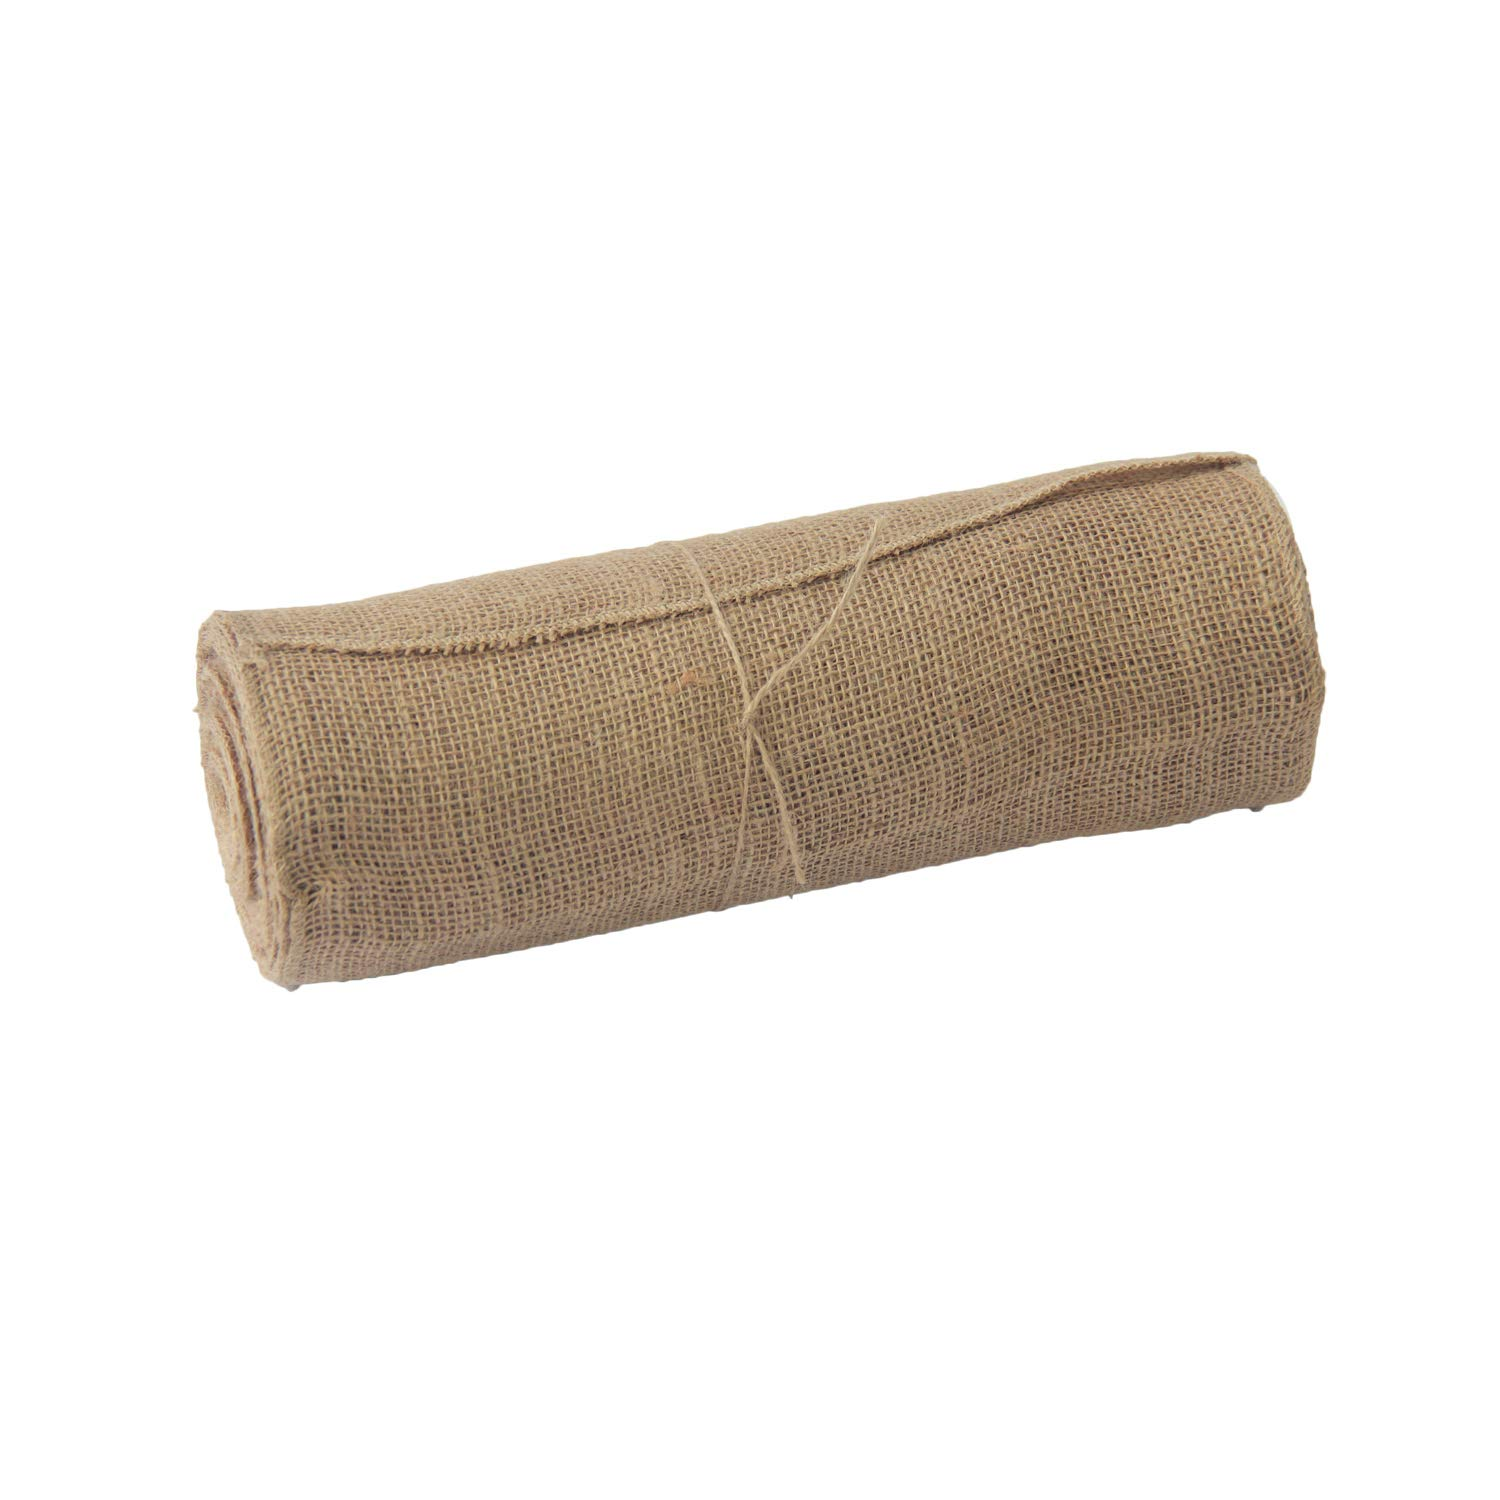 Jute Burlap Table Runner Roll - Natural 12'' x 10 Yards Hessian Tablue Runner with Finised Edges Banquet Wedding Party Event Decoration and Crafts (12'' x 10 Yards,1)